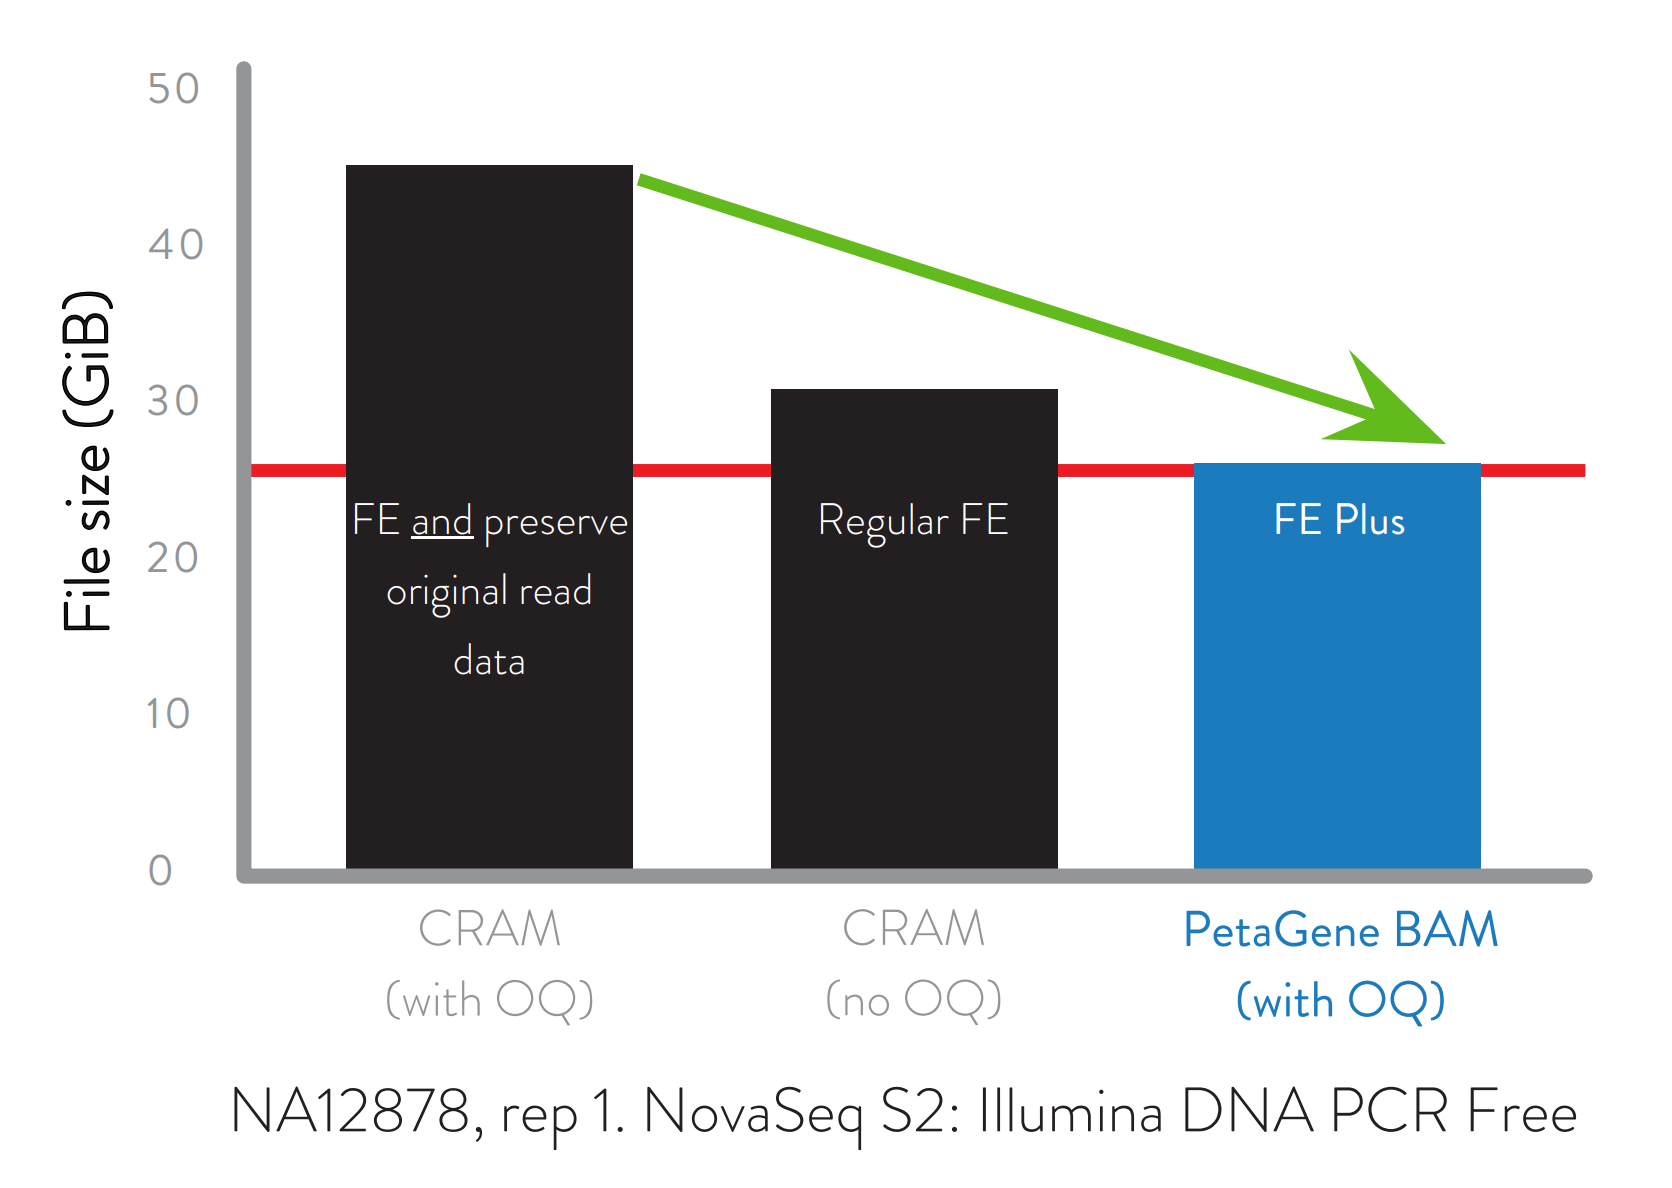 A graph demonstrating how a PetaGene FE Plus BAM file storing the original quality score data is smaller than a regular FE CRAM without the original quality score and a FE CRAM also preserving the original read data.